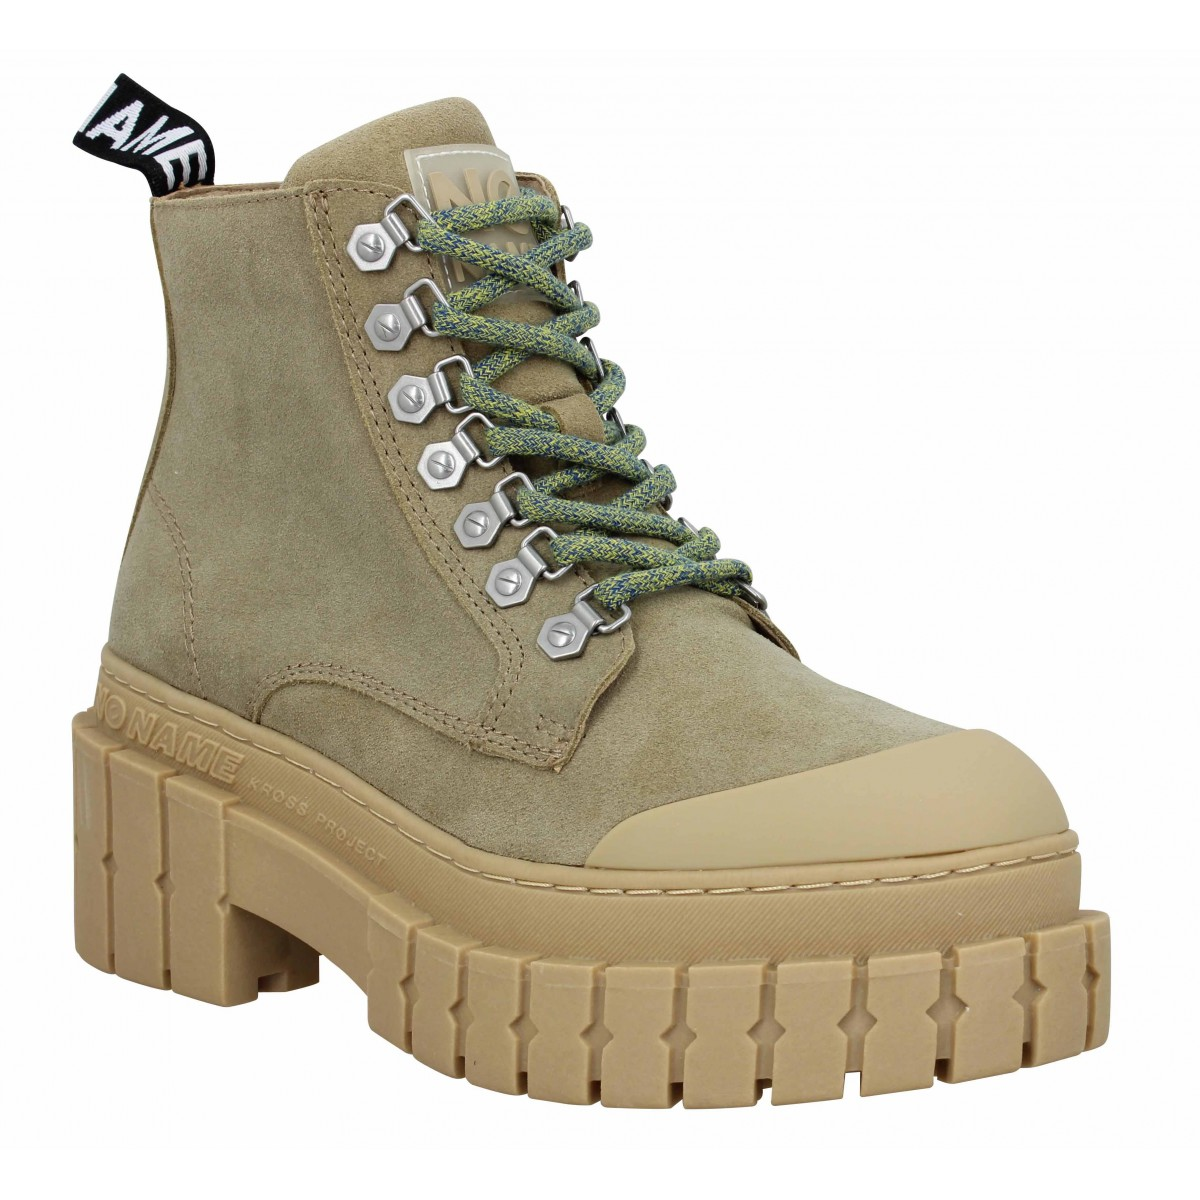 No Name Femme Kross Low Boots Suede...